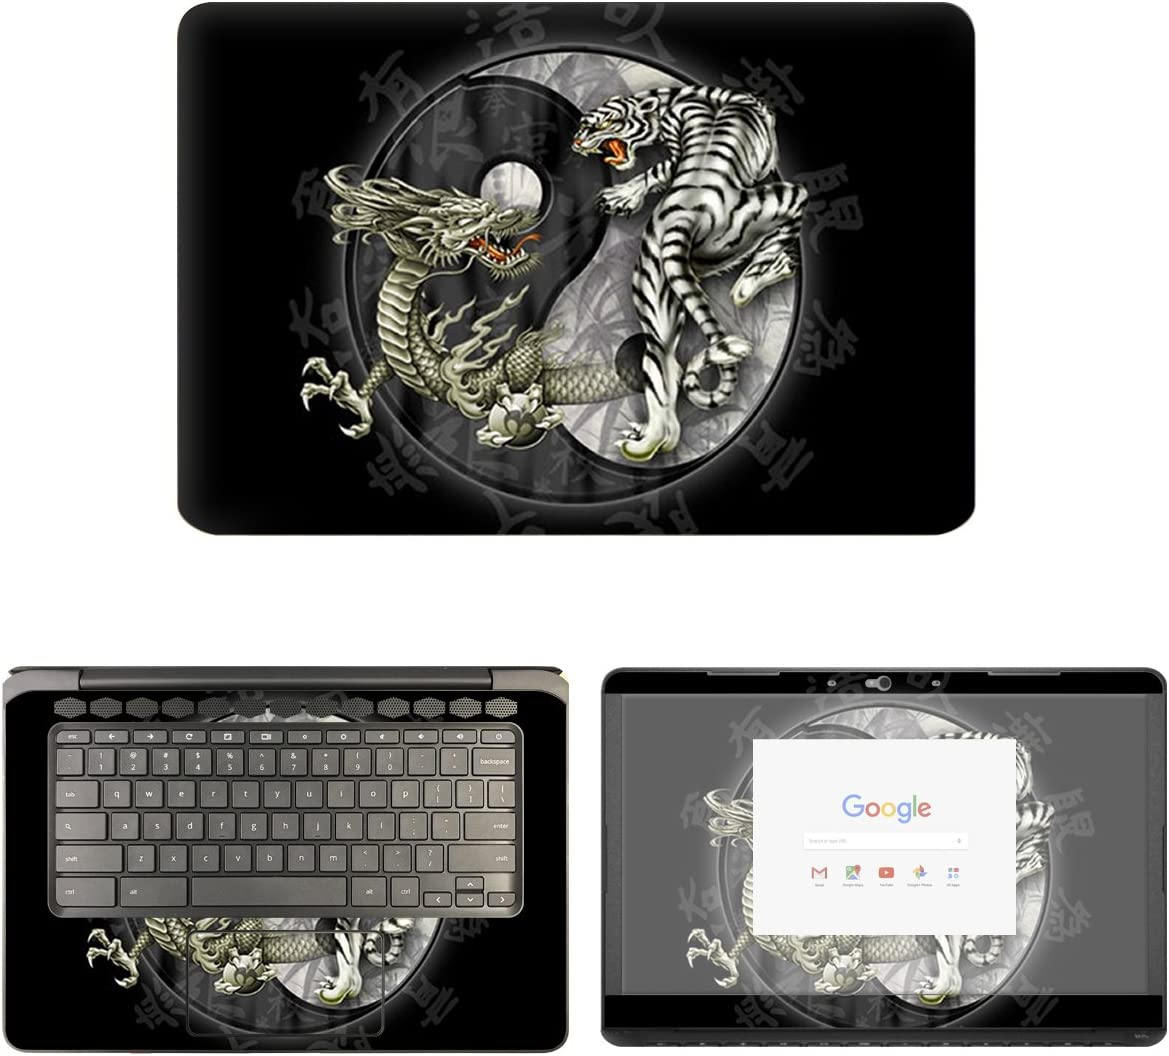 decalrus - Protective Decal Yin Yang Skin Sticker for HP ChromeBook 14-CA061DX (14